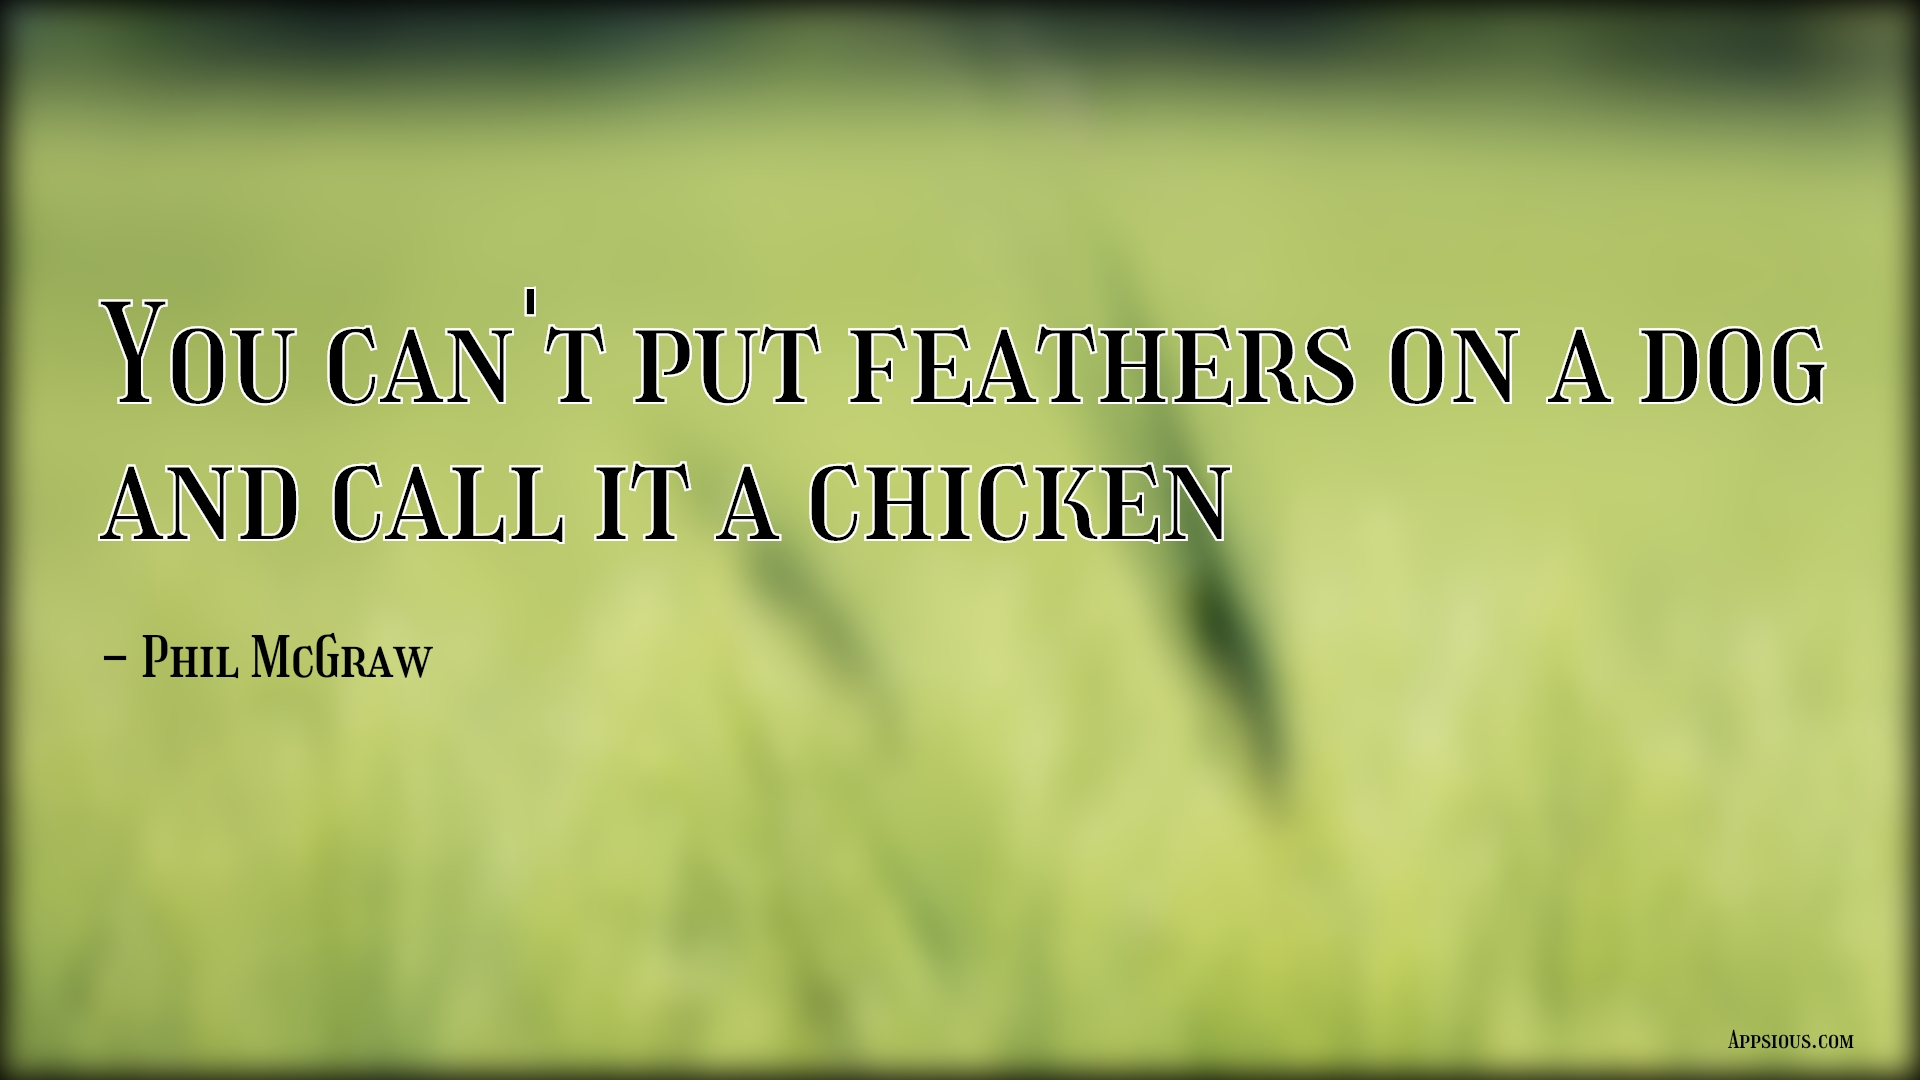 You can't put feathers on a dog and call it a chicken